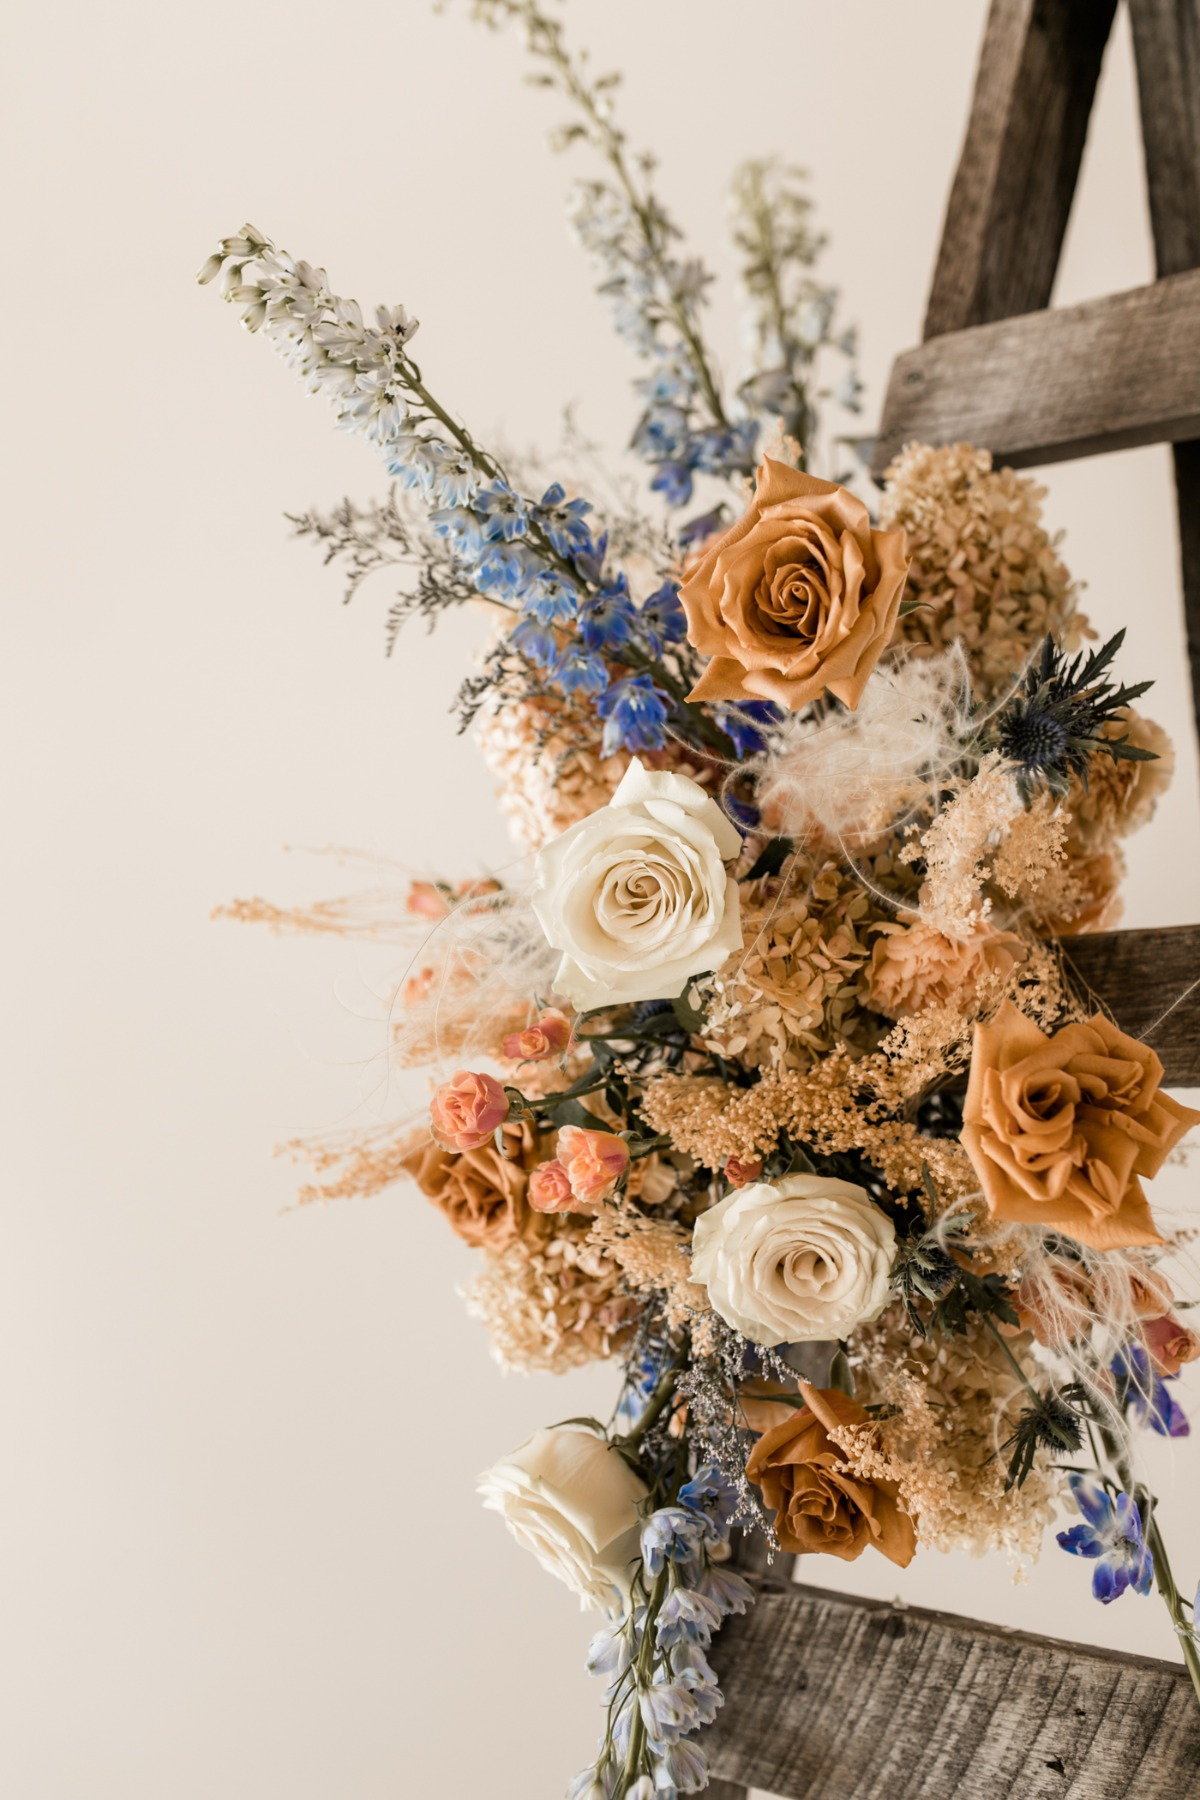 blue and orange wedding flower ideas from Flourish & Knot